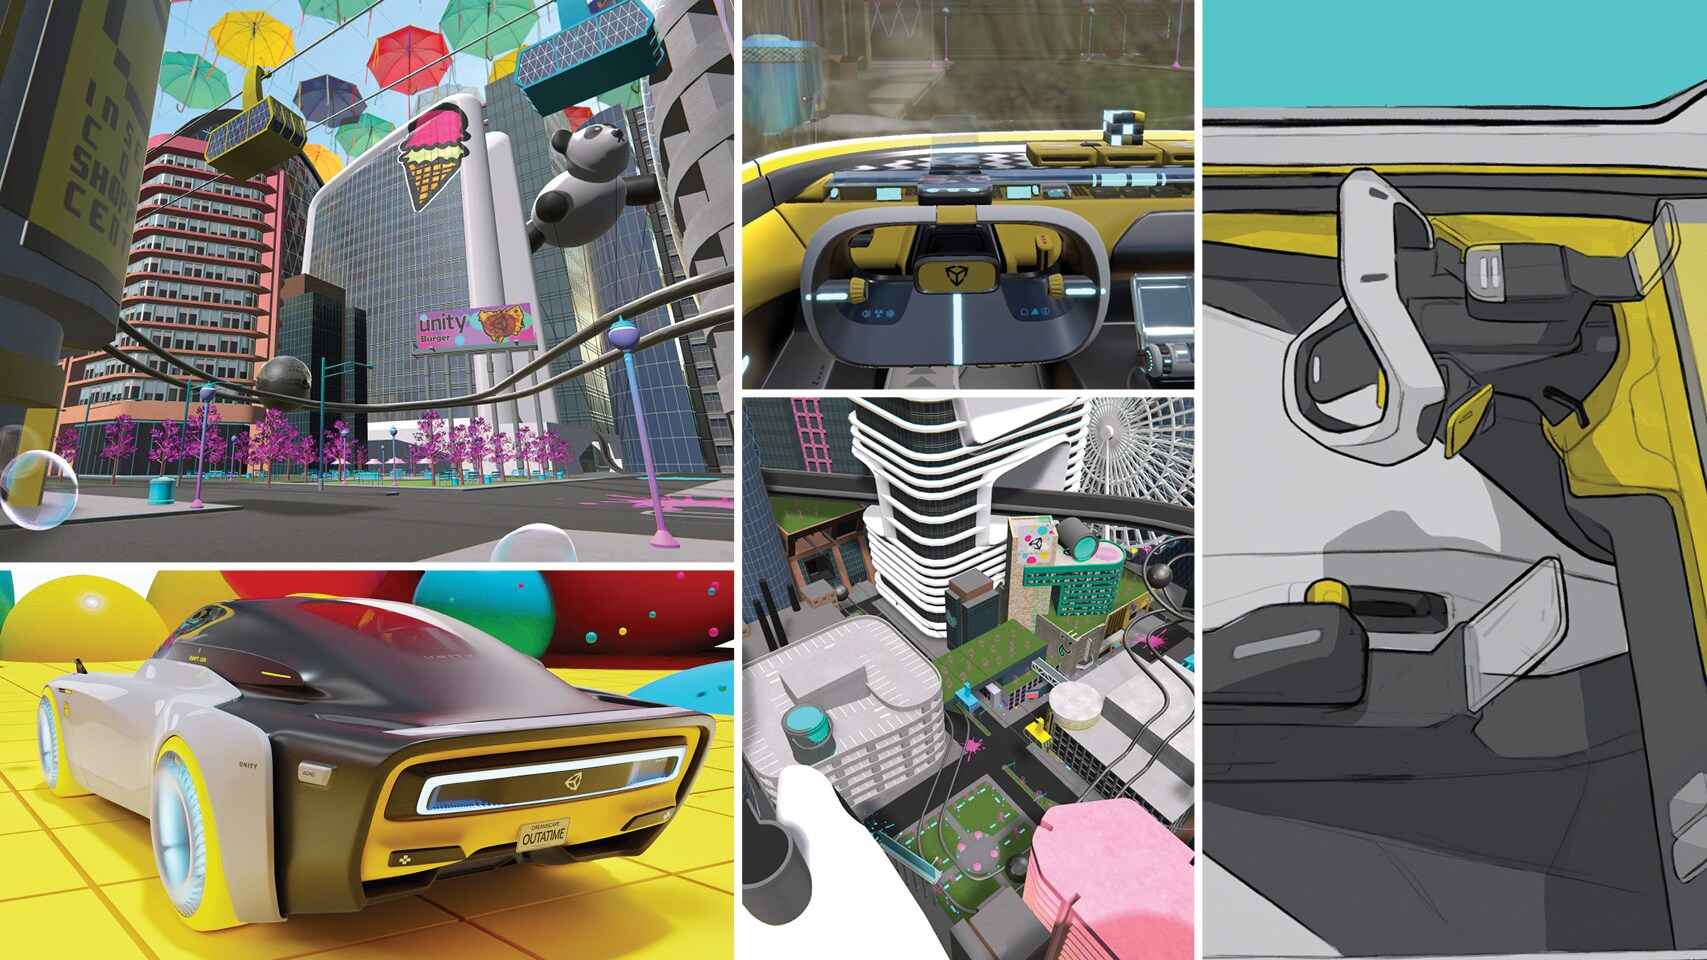 A 'dreamscape' filled with cars, bright colours, panda balloons and huge umbrellas